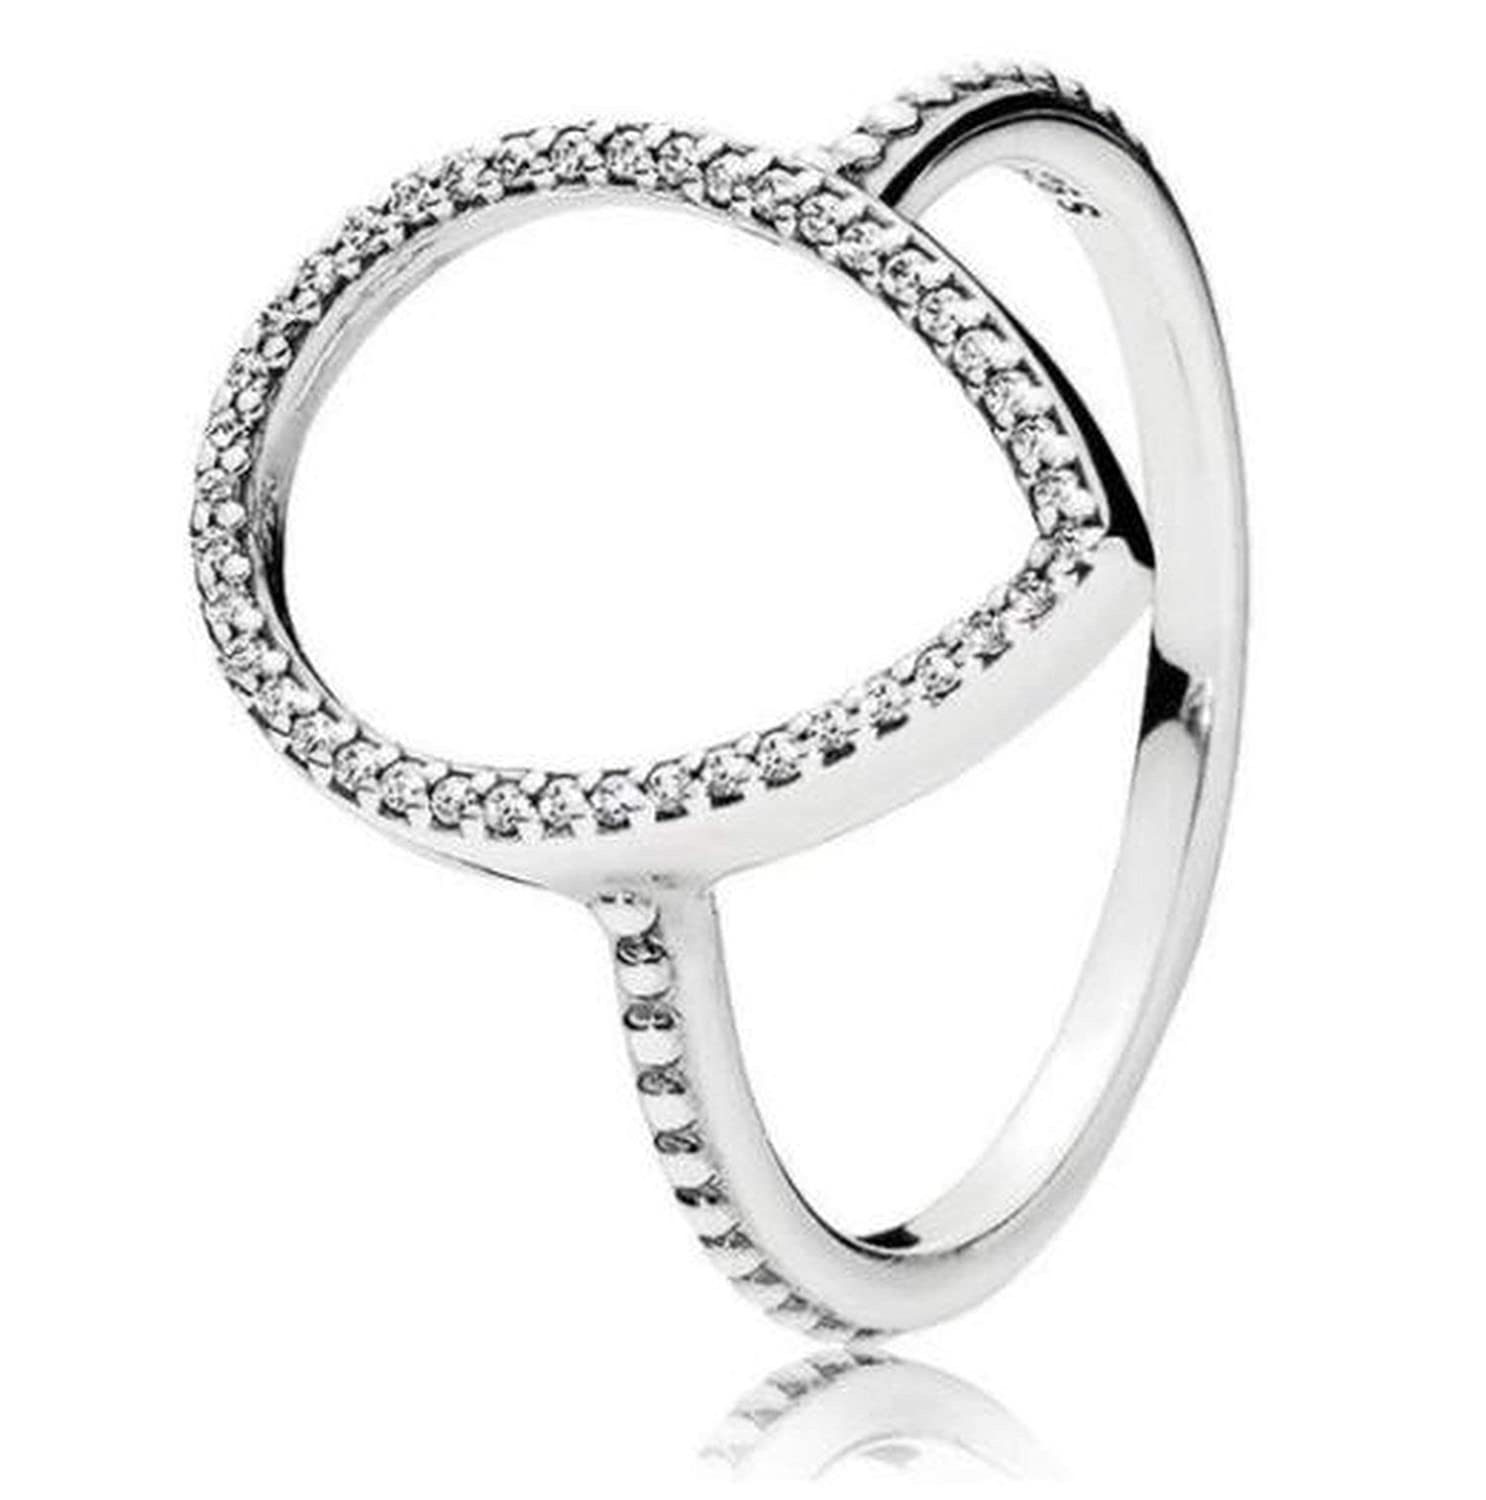 Beauty-inside Original 925 Sterling Silver Ring Pave Logo Signature with Crystal Pan Rings for Women Wedding Party Gift Fine Jewelry